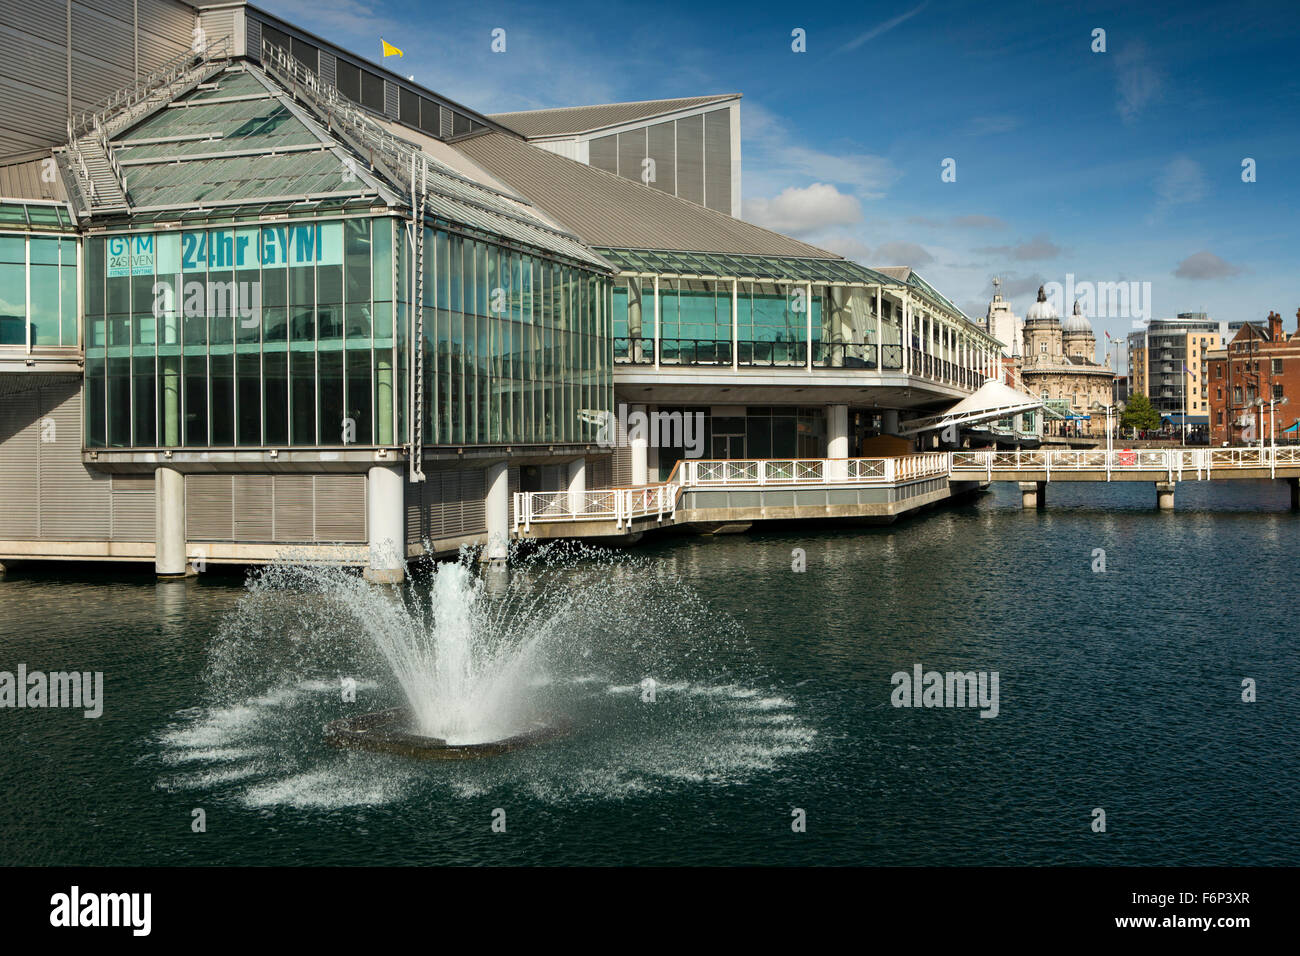 UK, England, Yorkshire, Hull, Princes Dock Shopping Centre, fountain by 24 hour gym - Stock Image